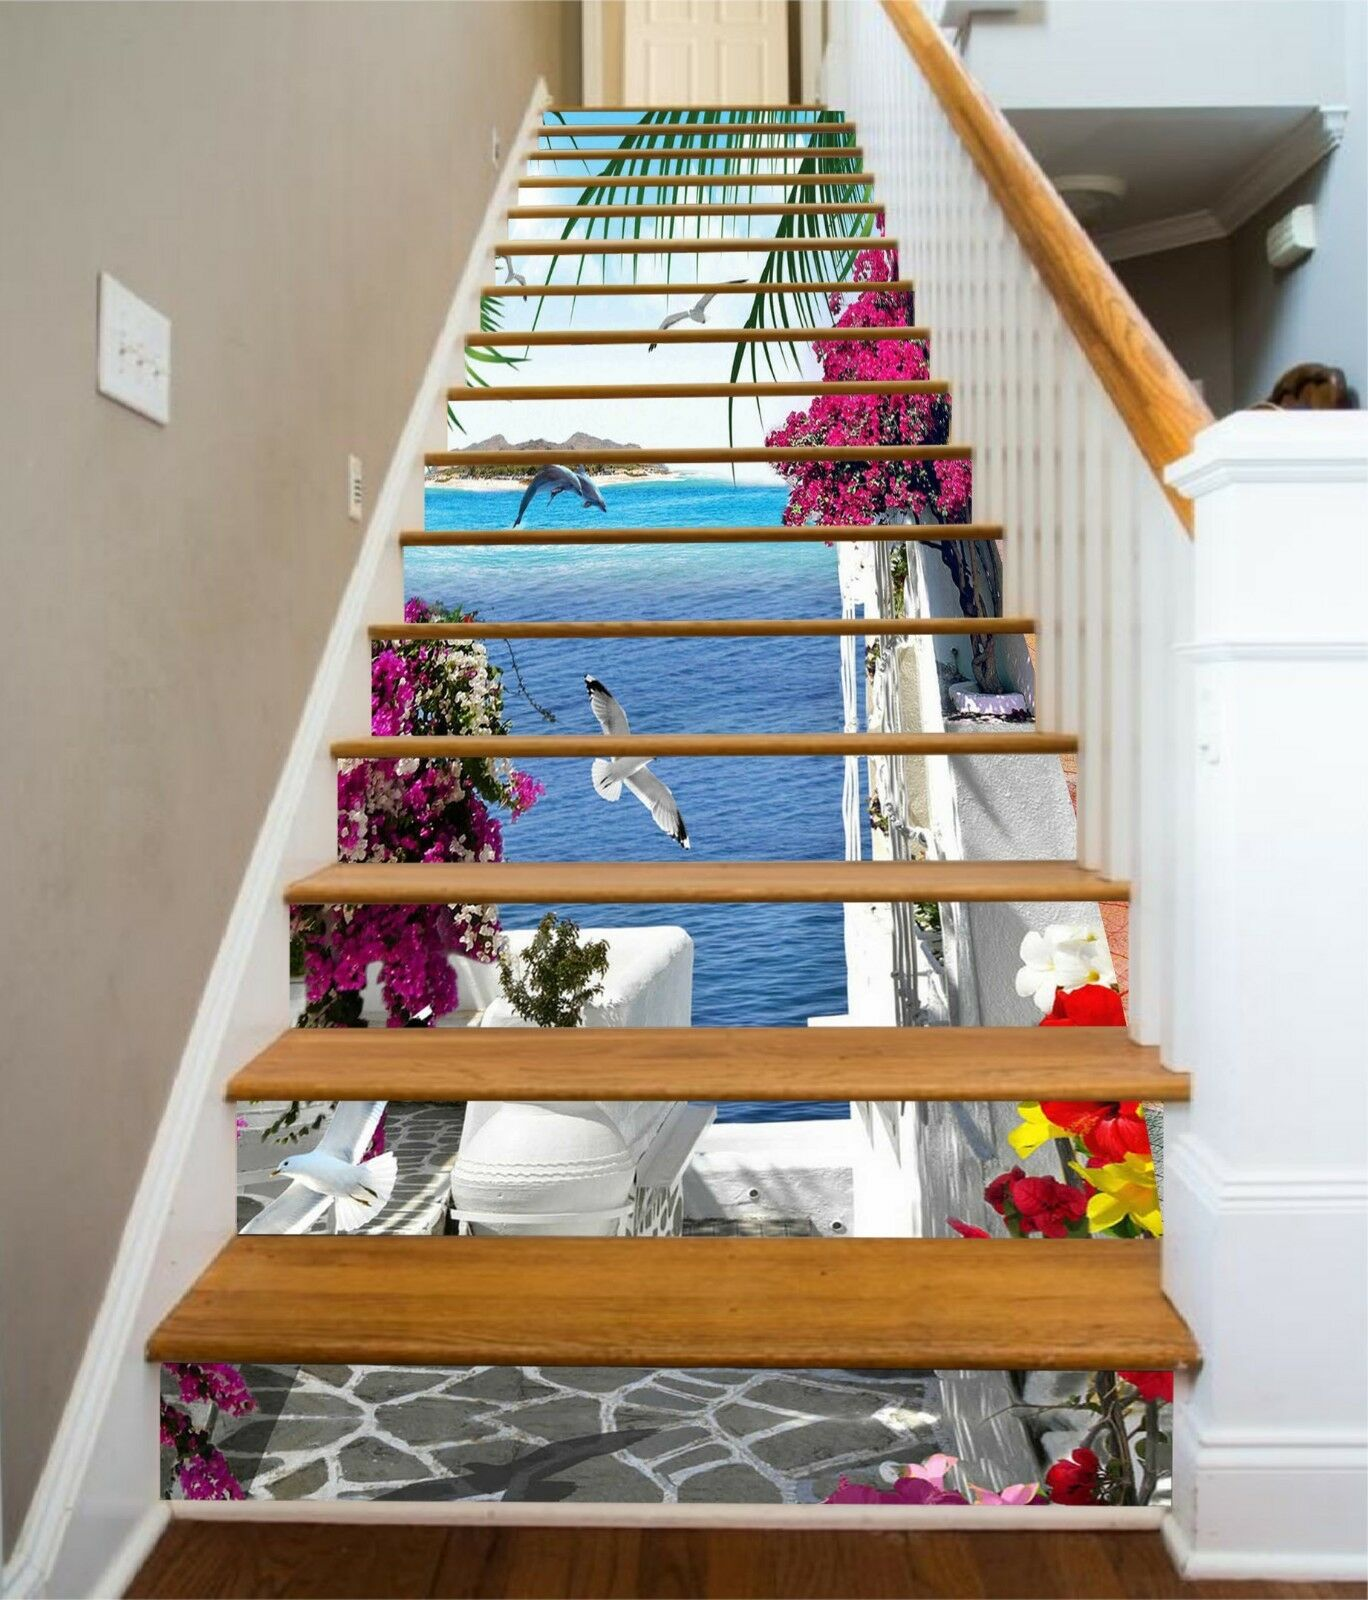 3D Sea Flower House Stair Risers Decoration Photo Mural Vinyl Decal Wallpaper CA